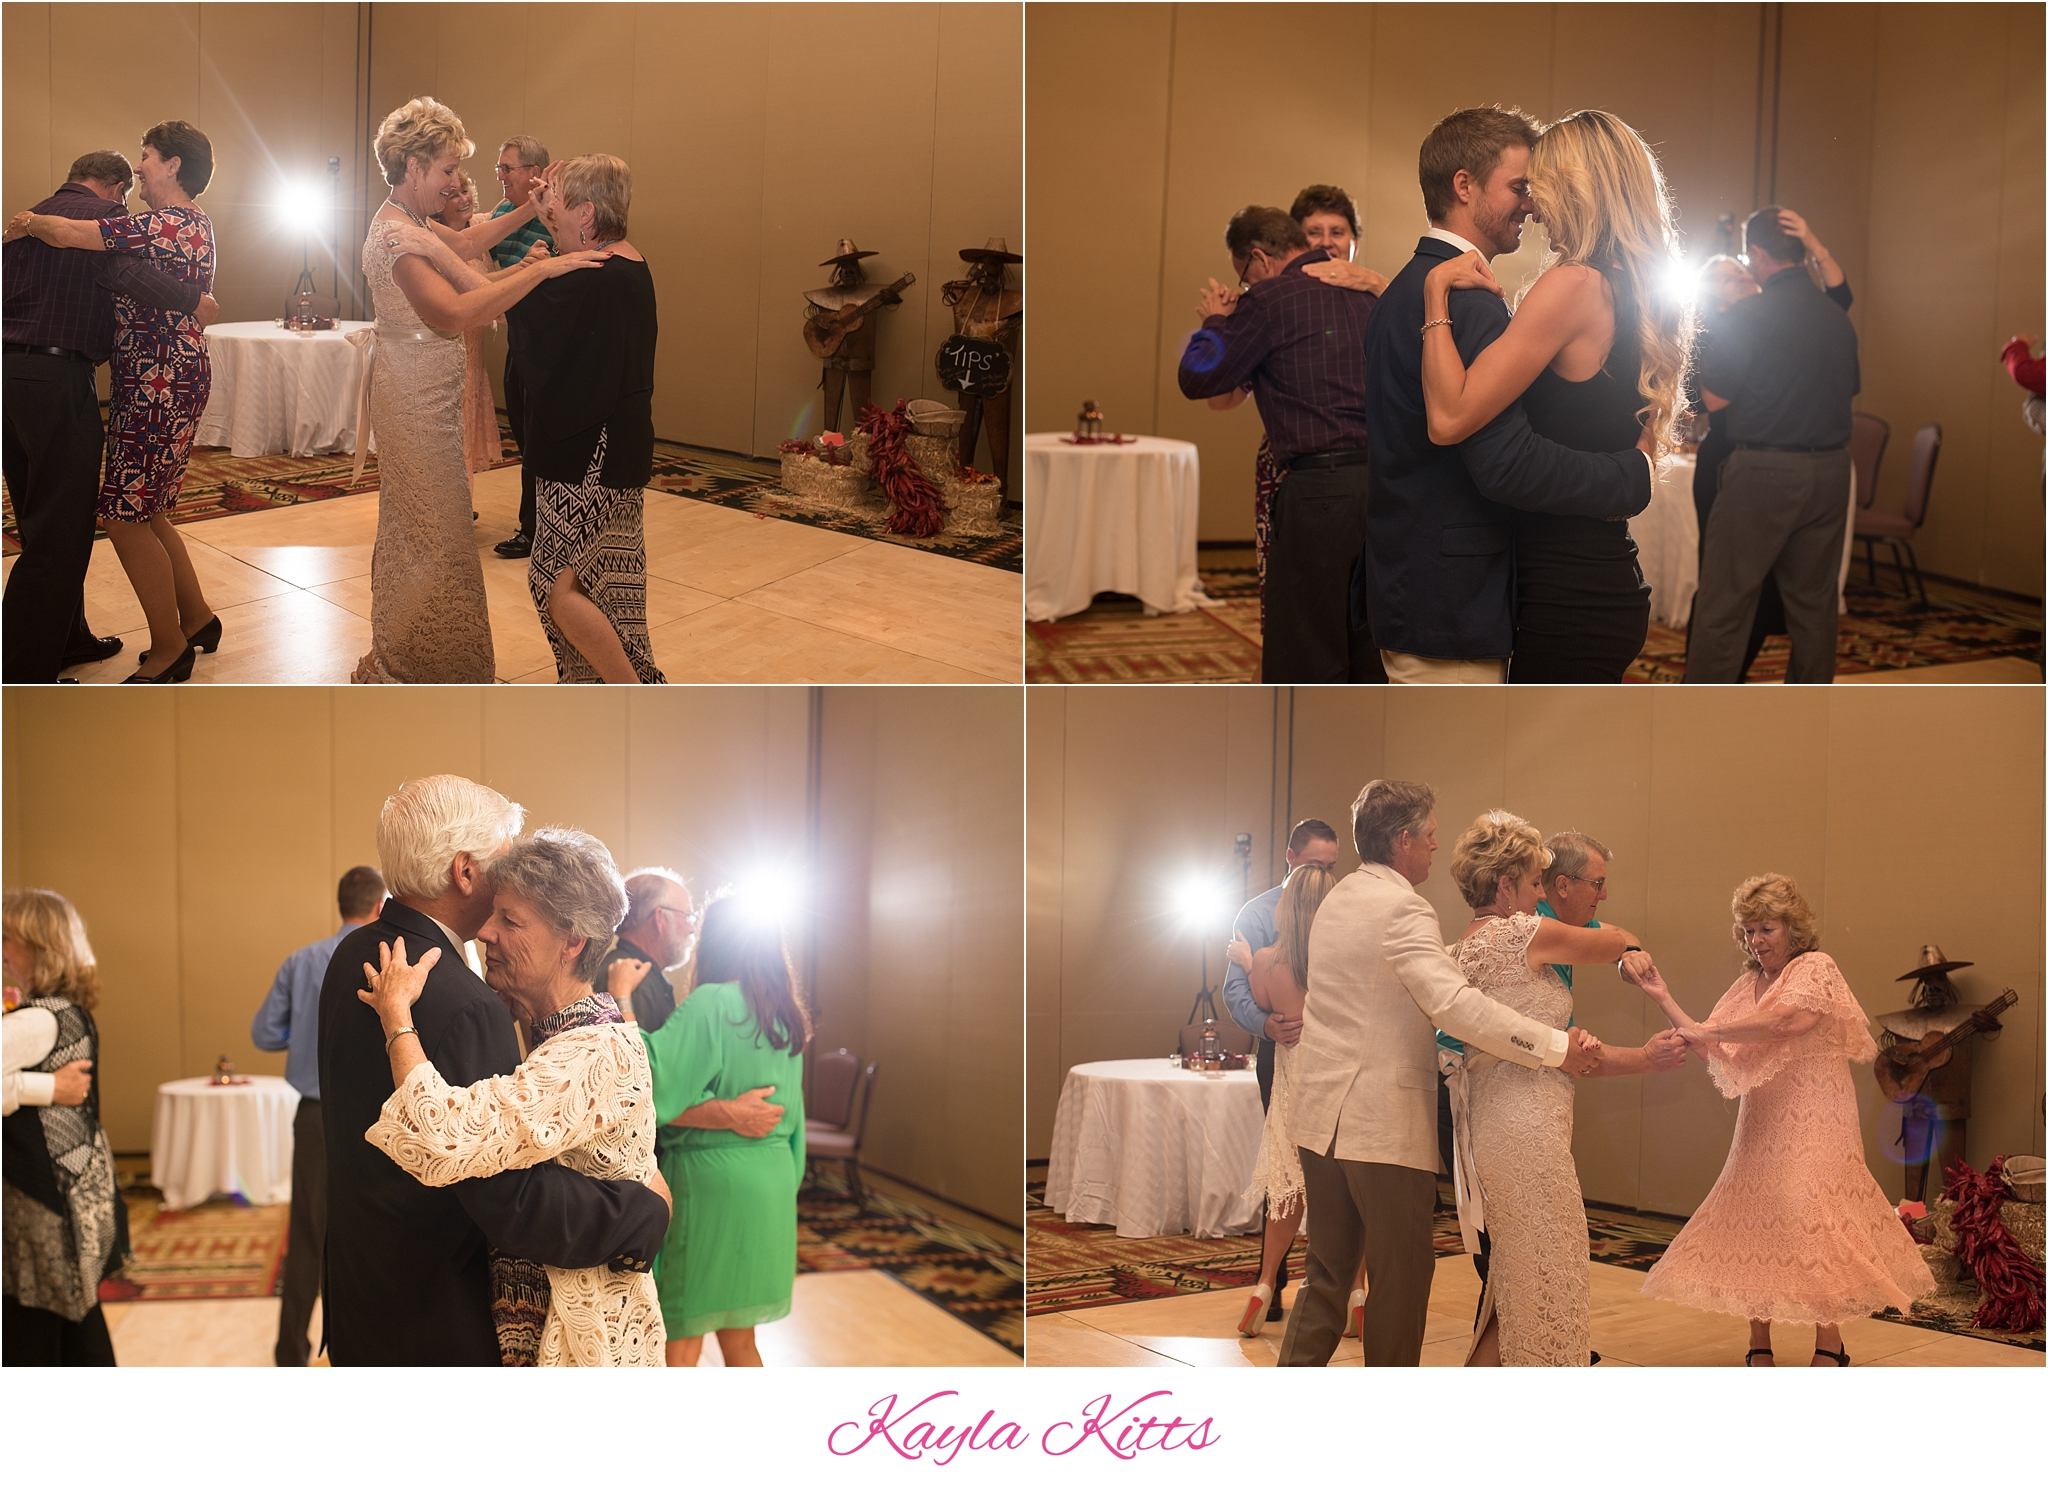 kayla kitts photography - albuquerque wedding photographer - albuquerque wedding photography - albuquerque venue - hyatt tamaya - hyatt tamaya wedding - new mexico wedding photographer_0056.jpg